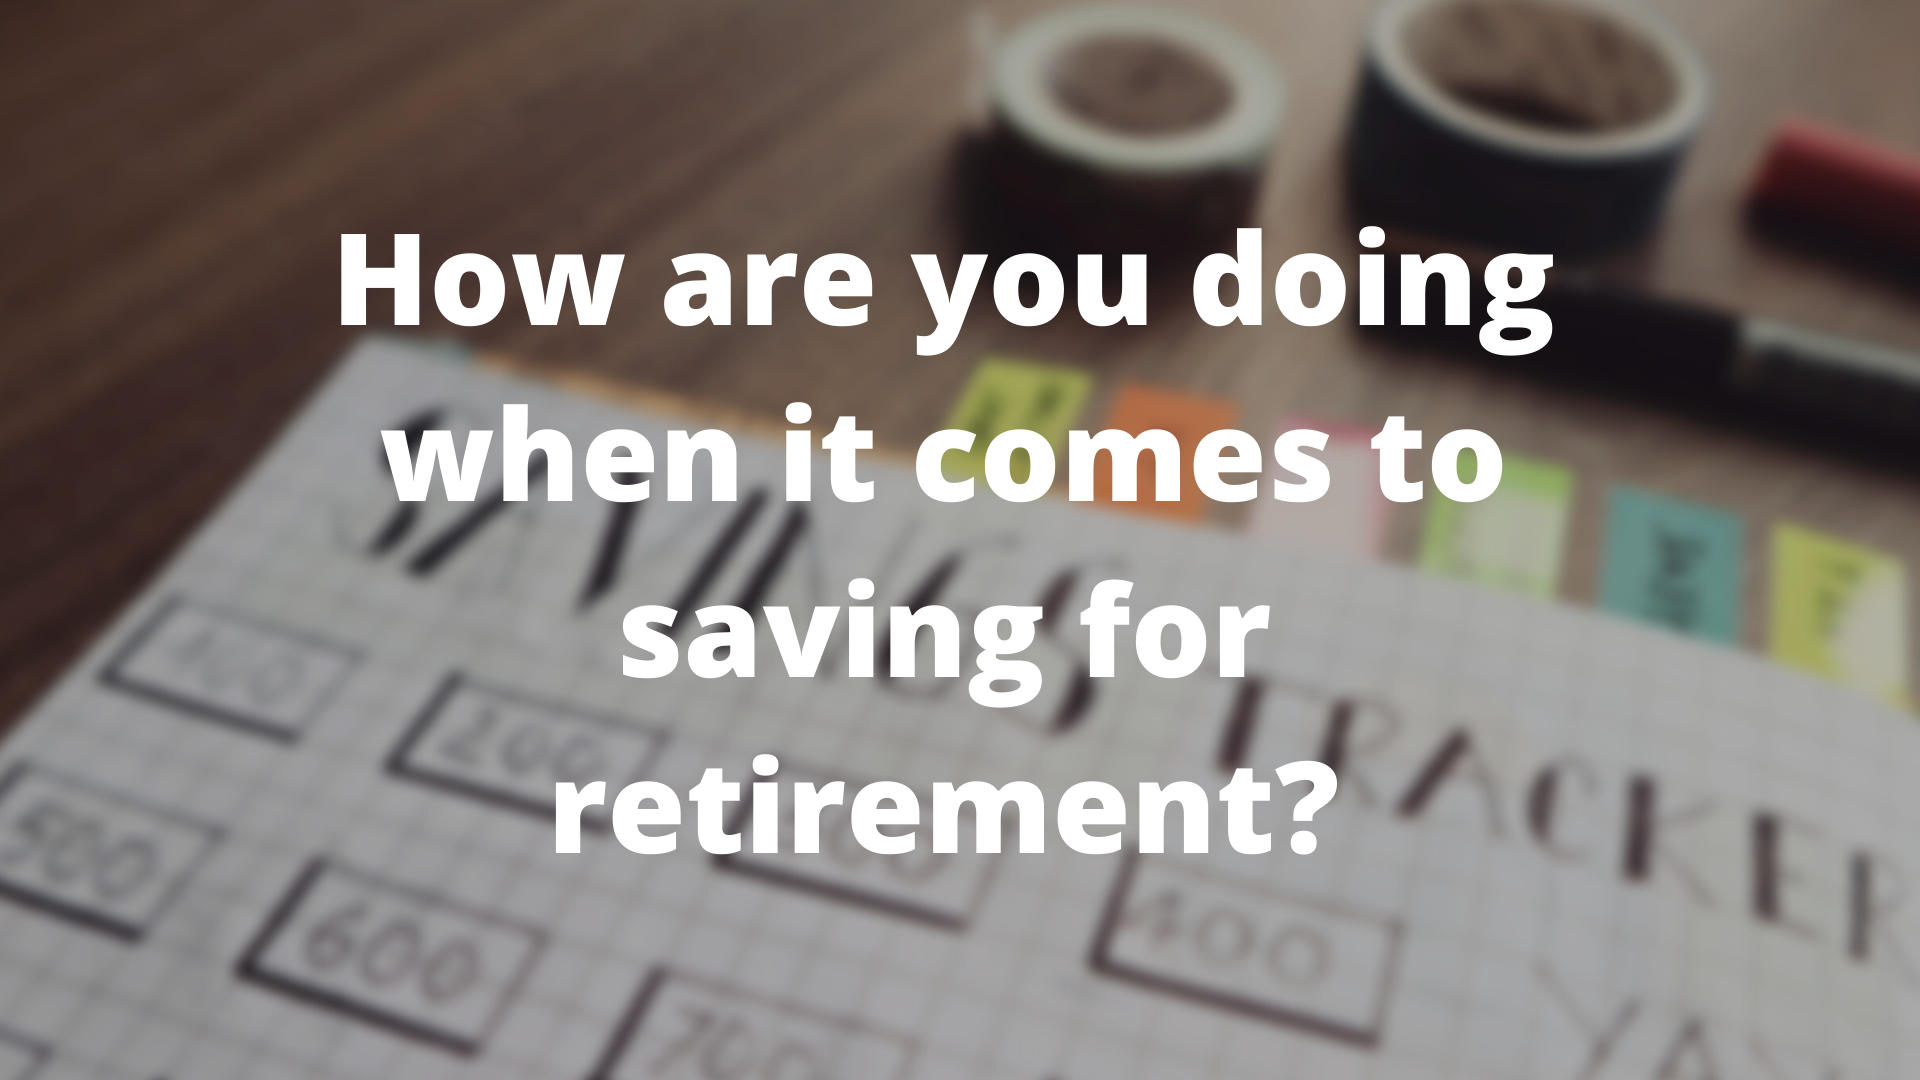 How Does Your Retirement Savings Compare to Other People Your Age?